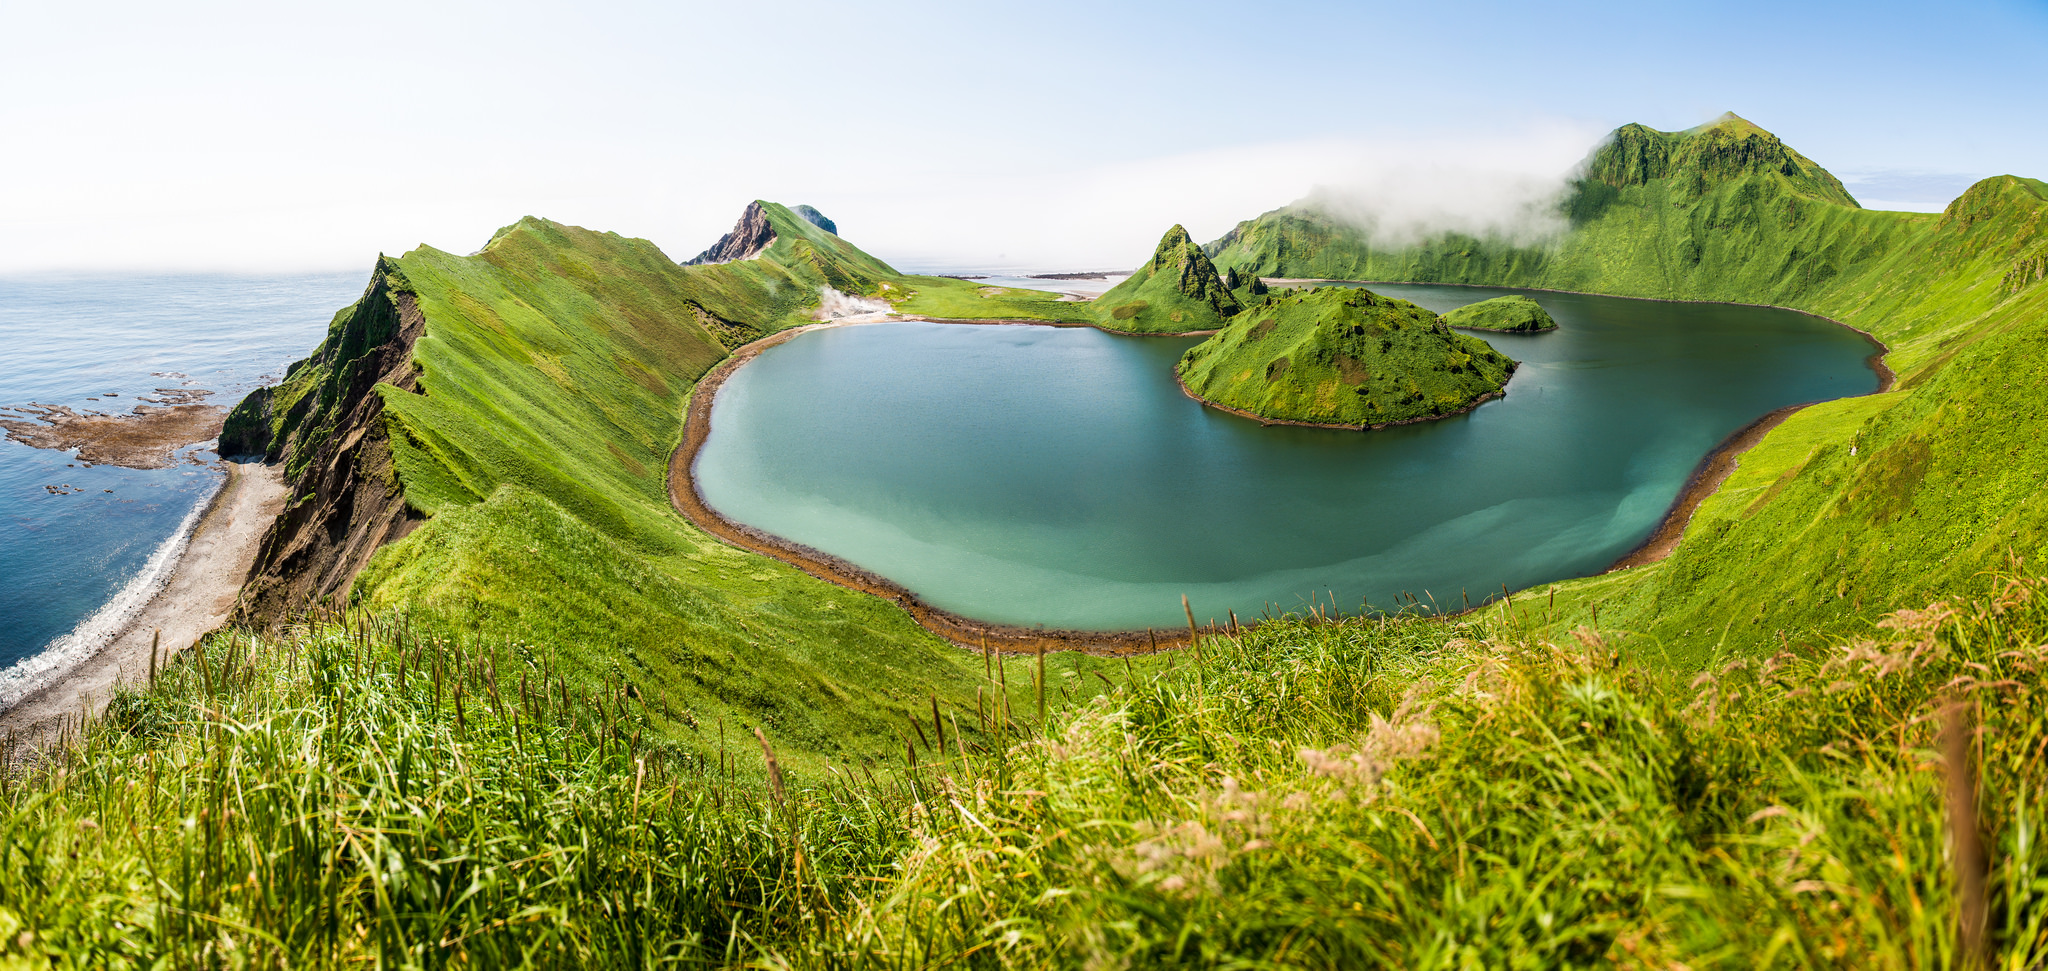 The Southern Kuril Islands have unspoilt nature.